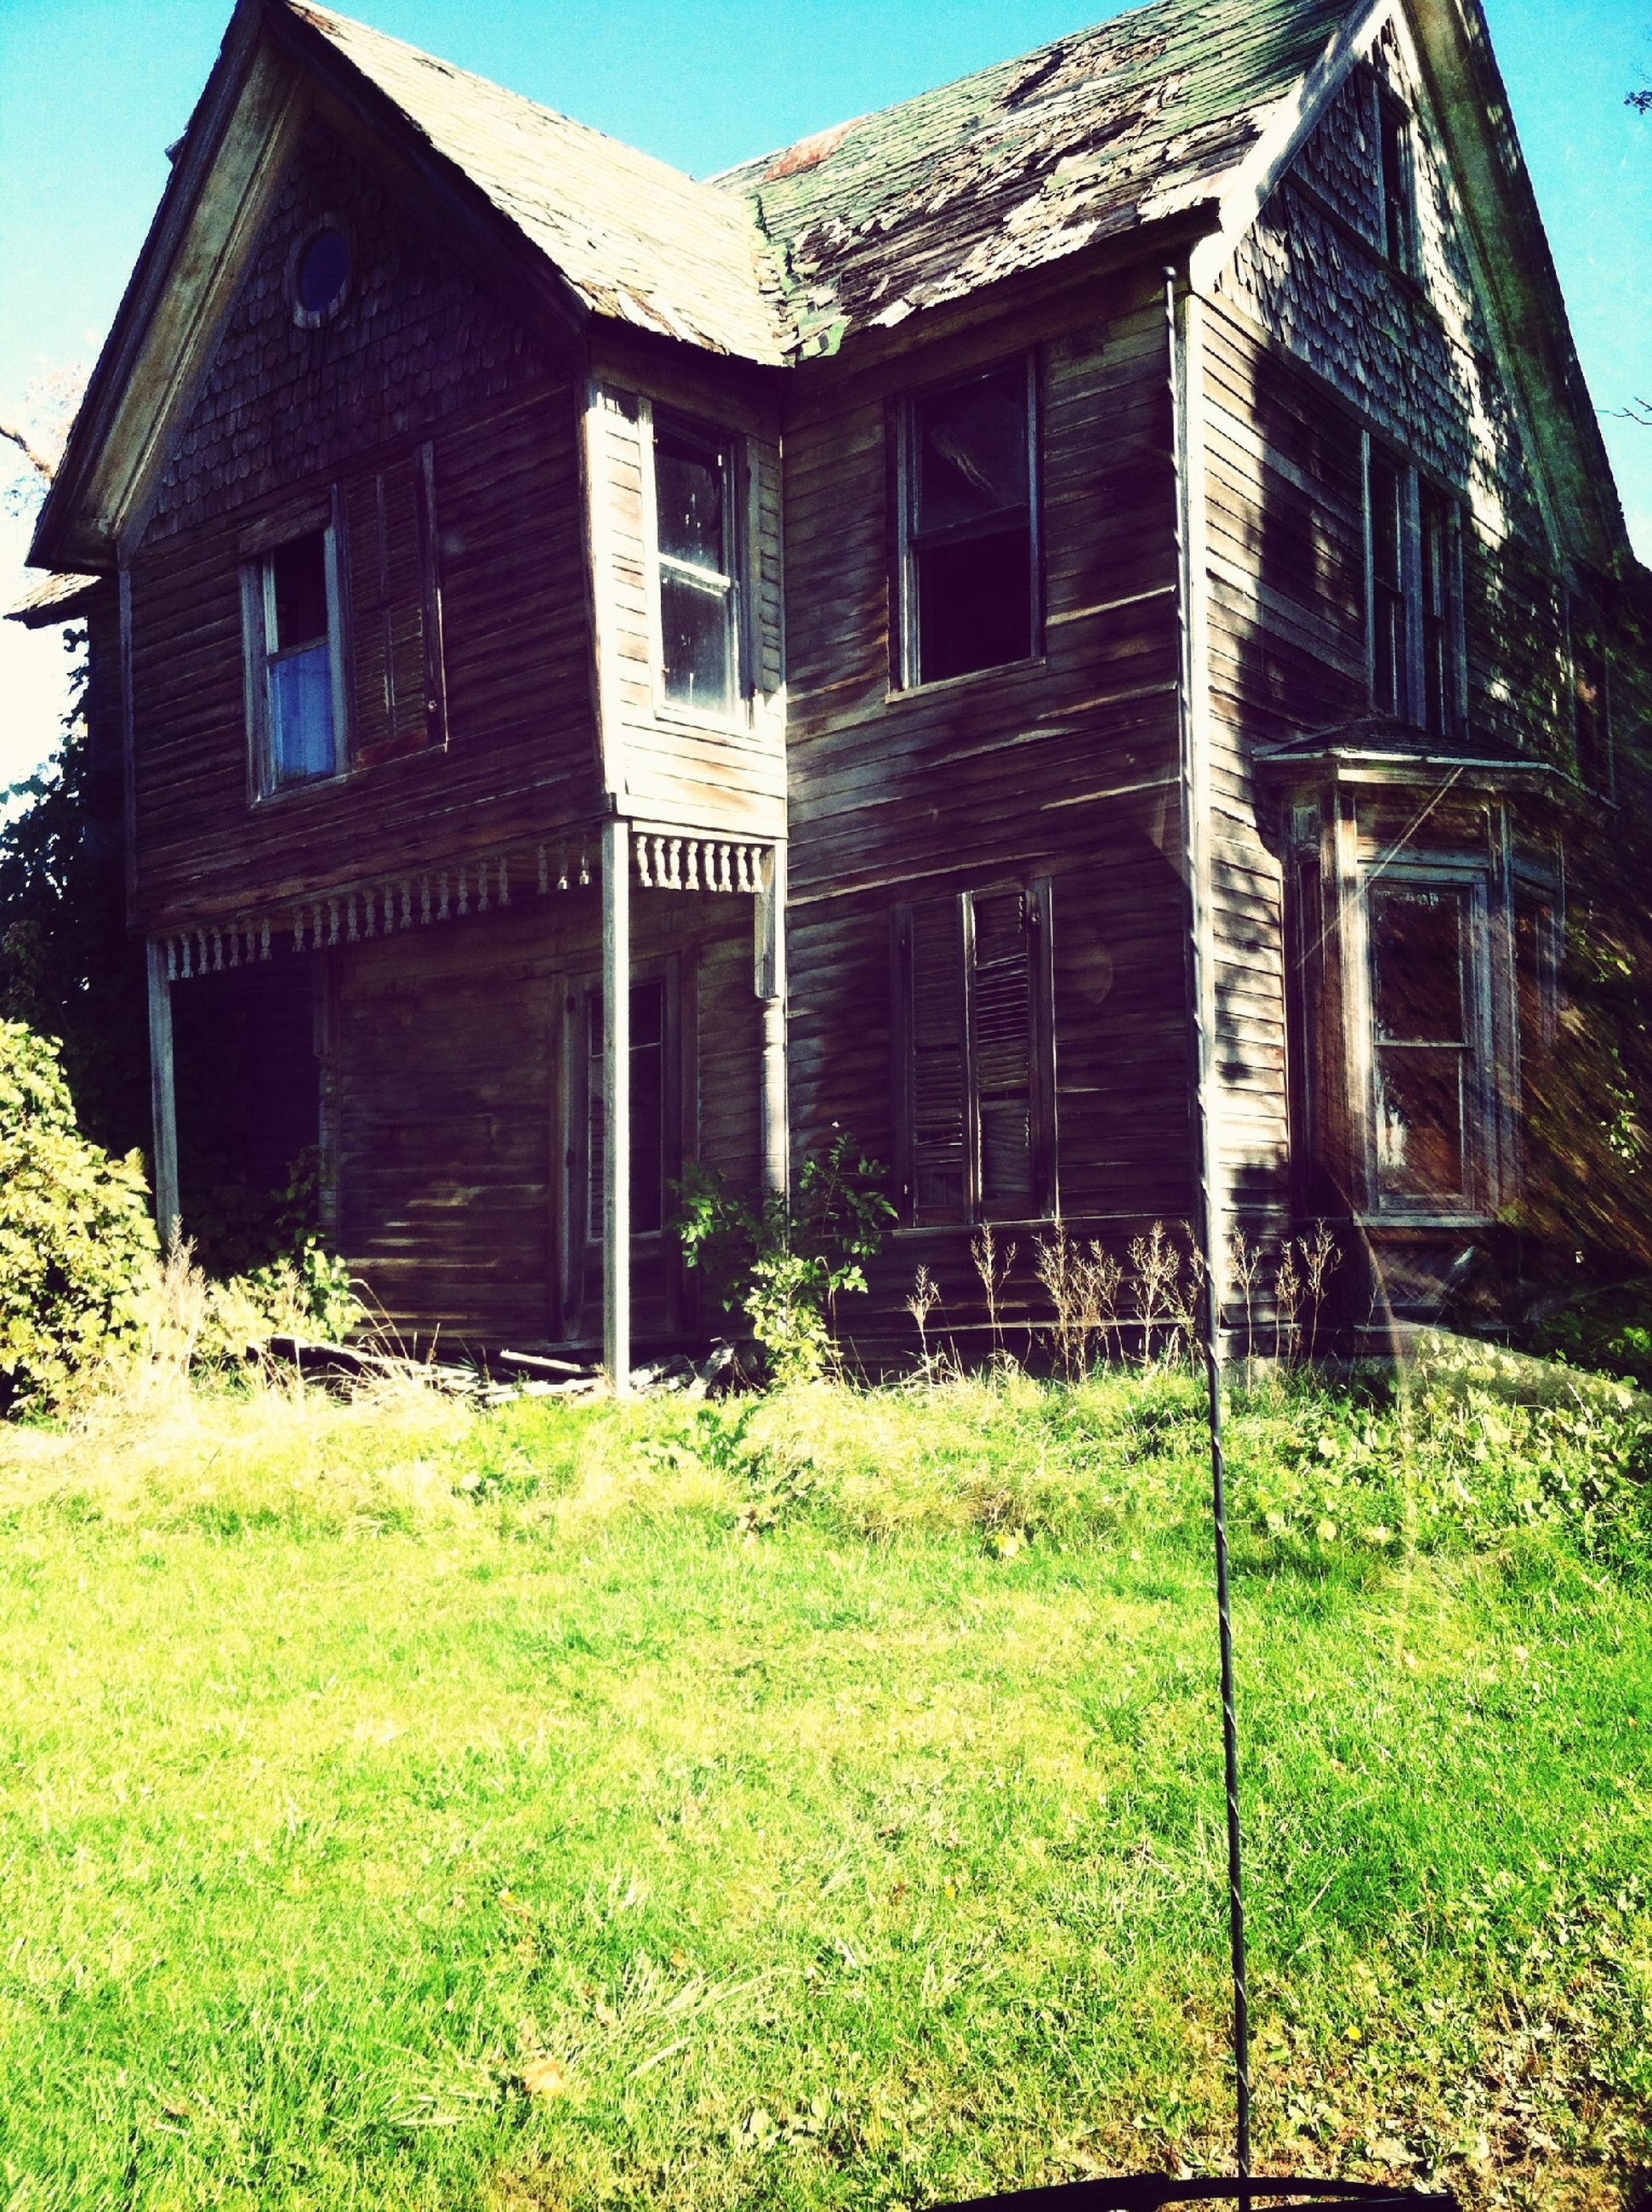 building exterior, architecture, built structure, grass, house, abandoned, window, plant, grassy, old, field, residential structure, green color, sky, damaged, day, clear sky, obsolete, sunlight, growth